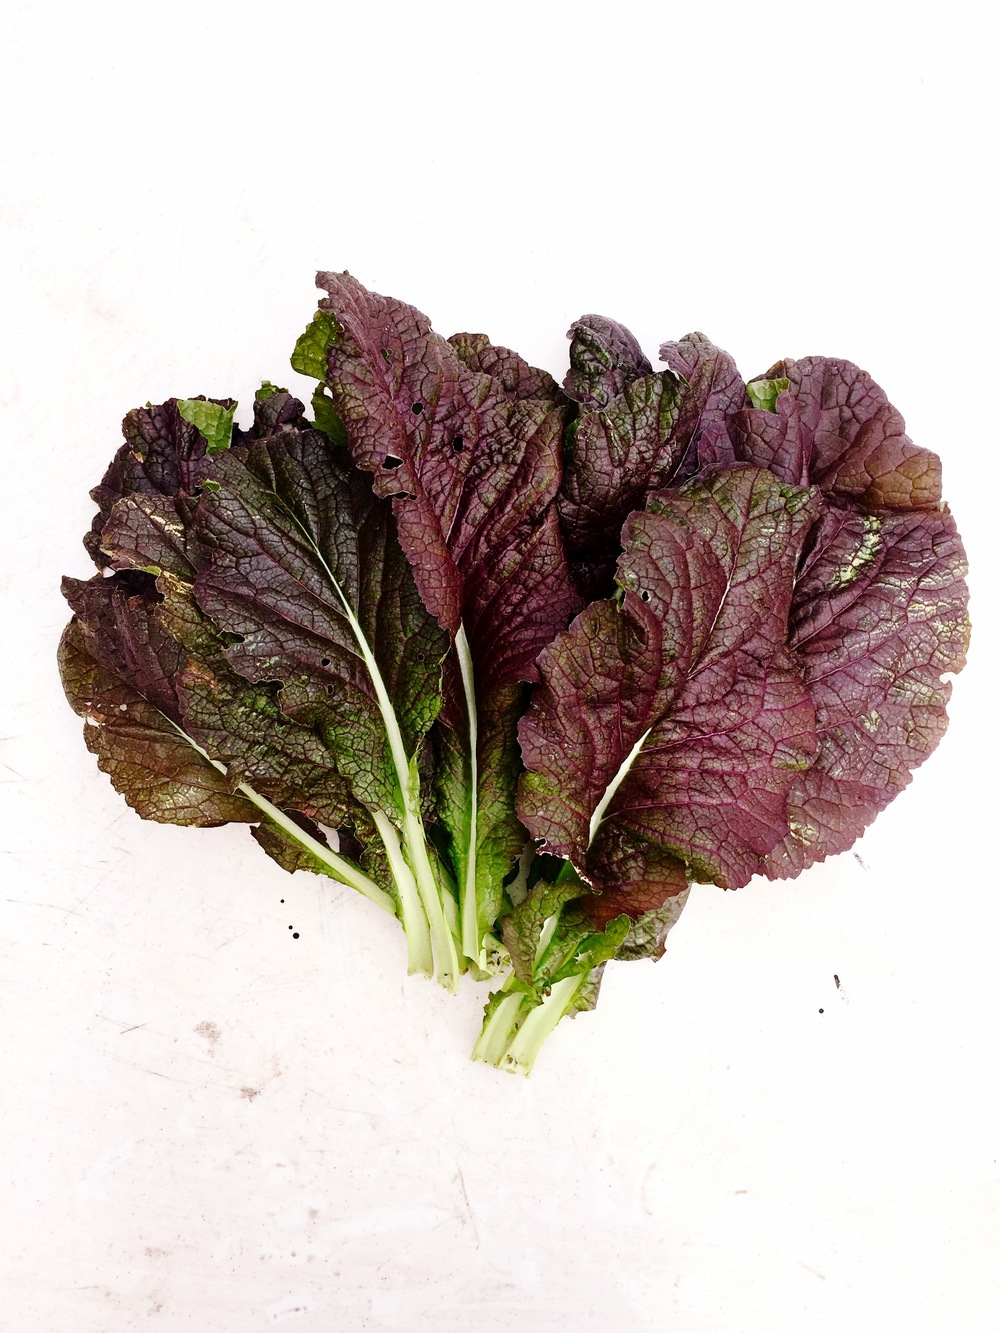 GIANT RED MUSTARD GREENS